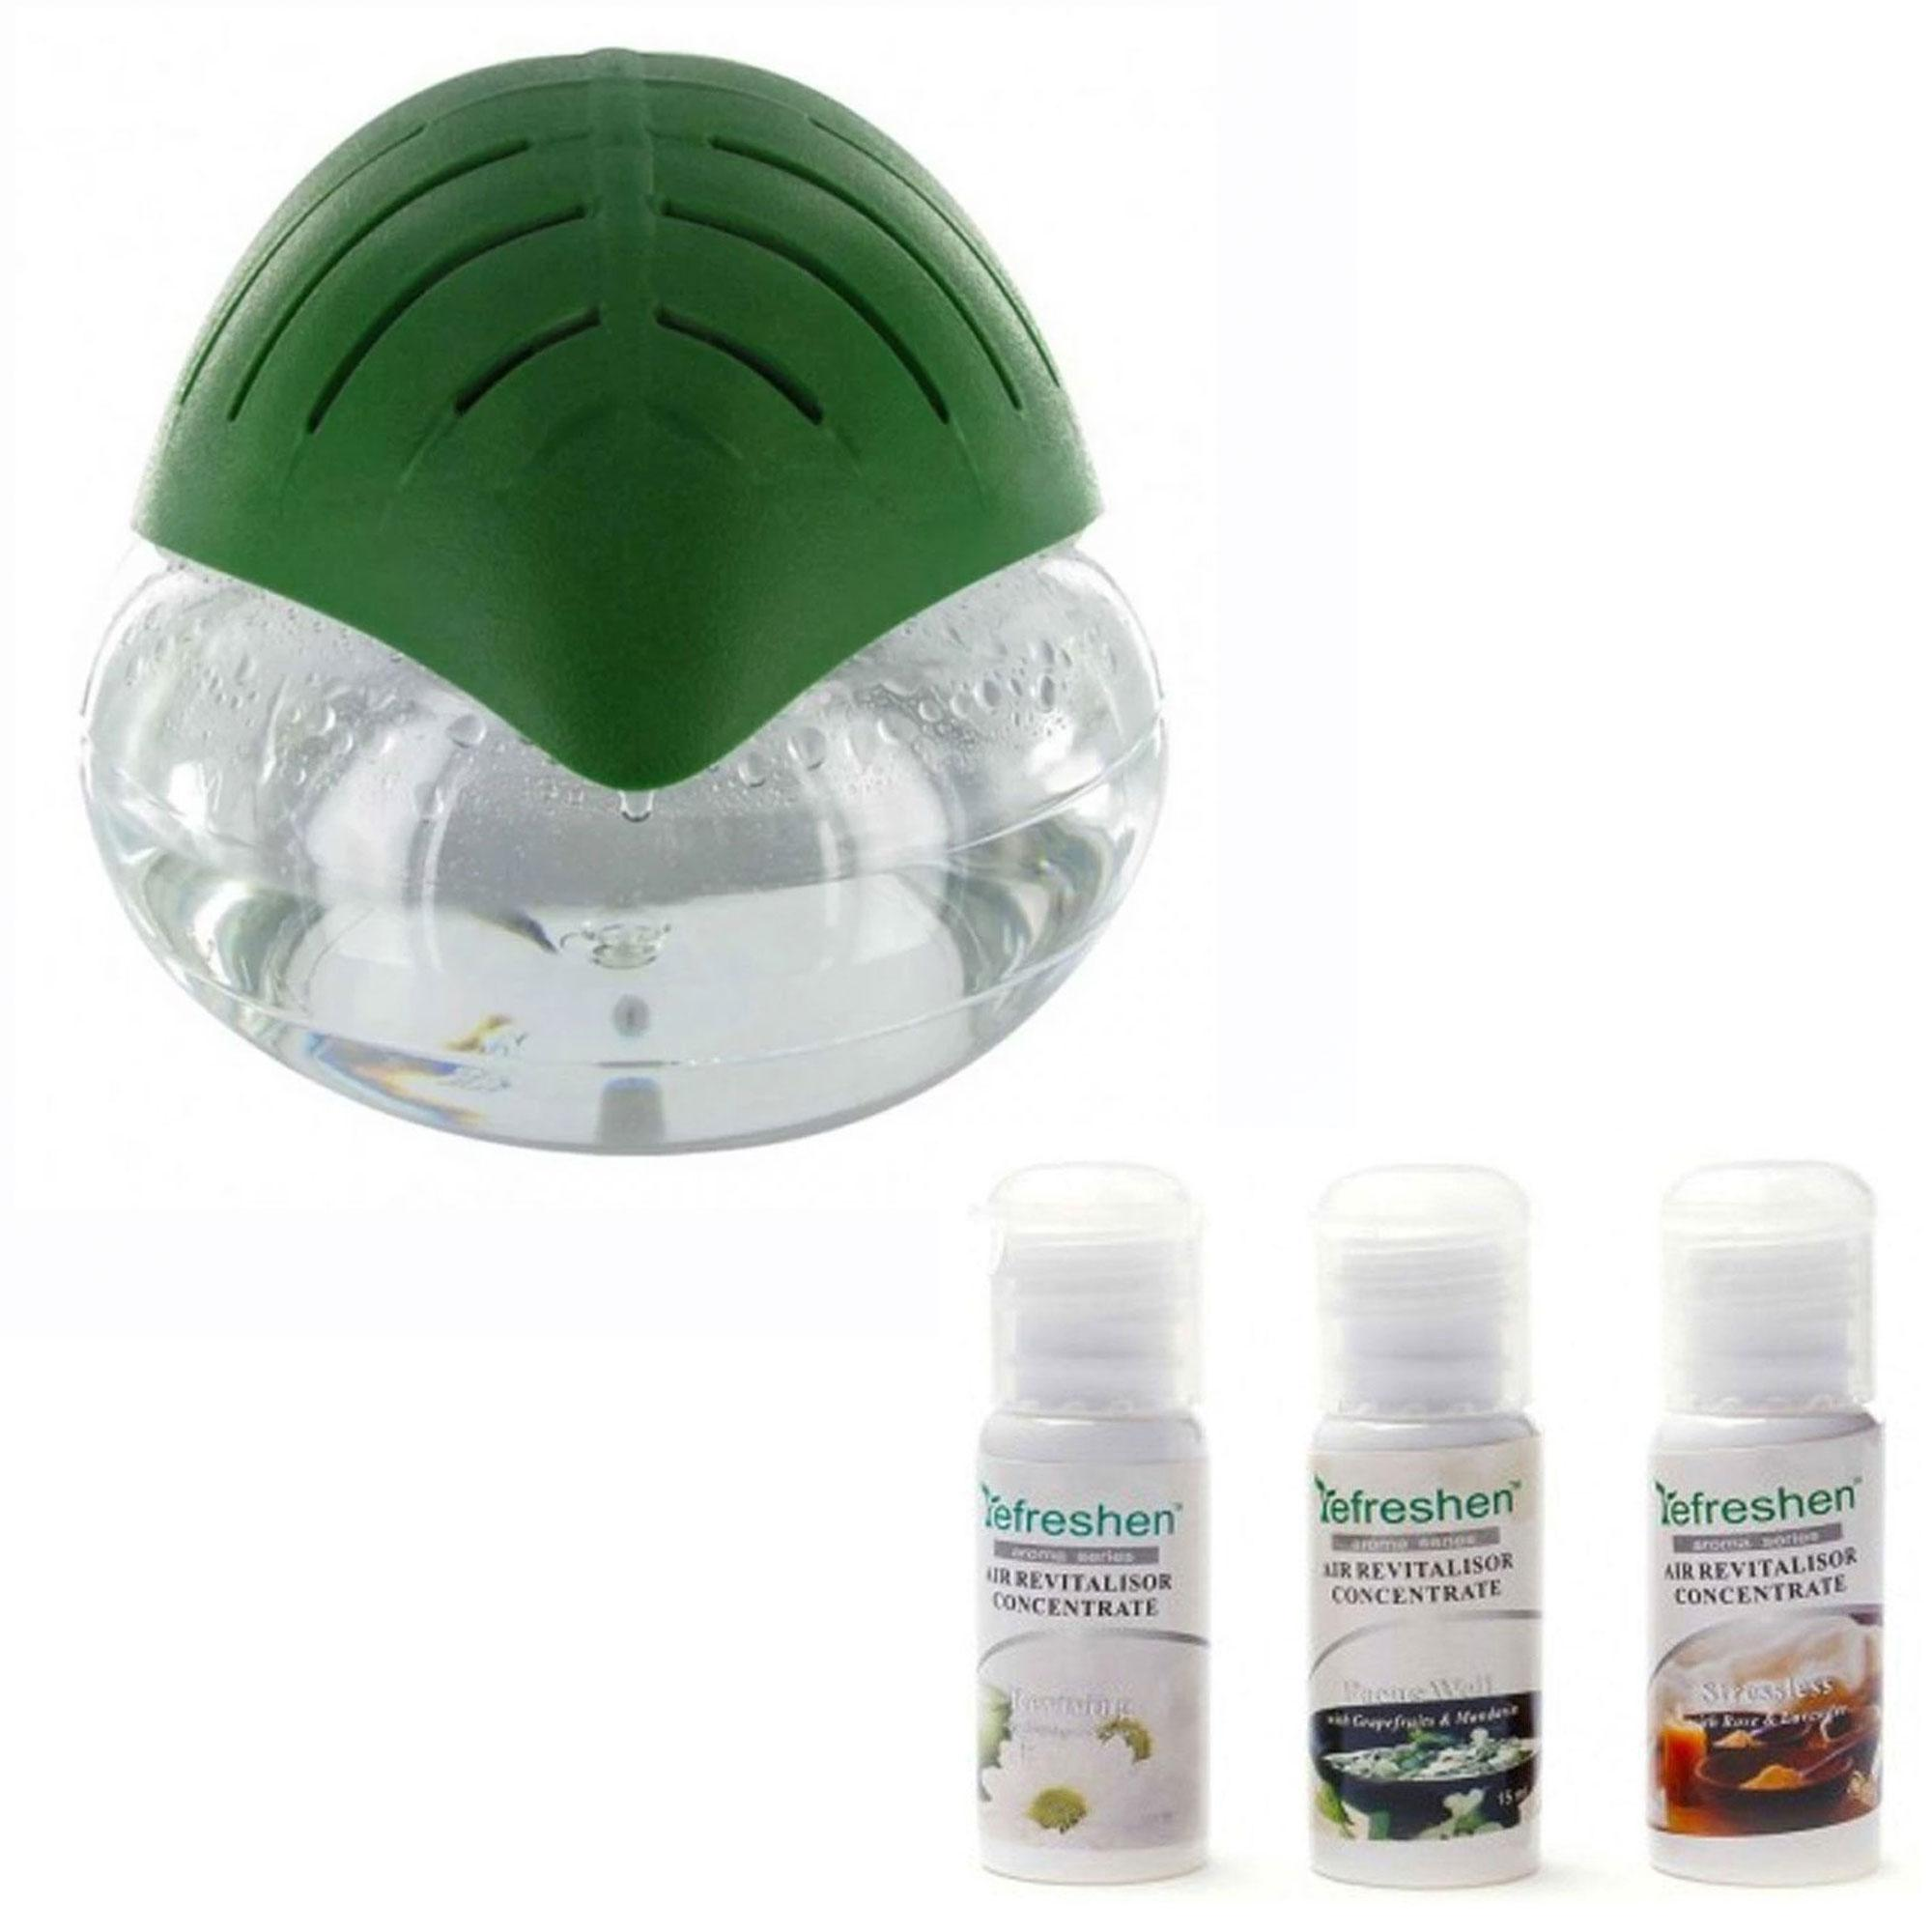 H2o Air Purifier Humidifier And Revitalizer (dark Green) With Humidifier Scent Aroma Series Starter Kit C (white) By Gonzalez General Merchandise.